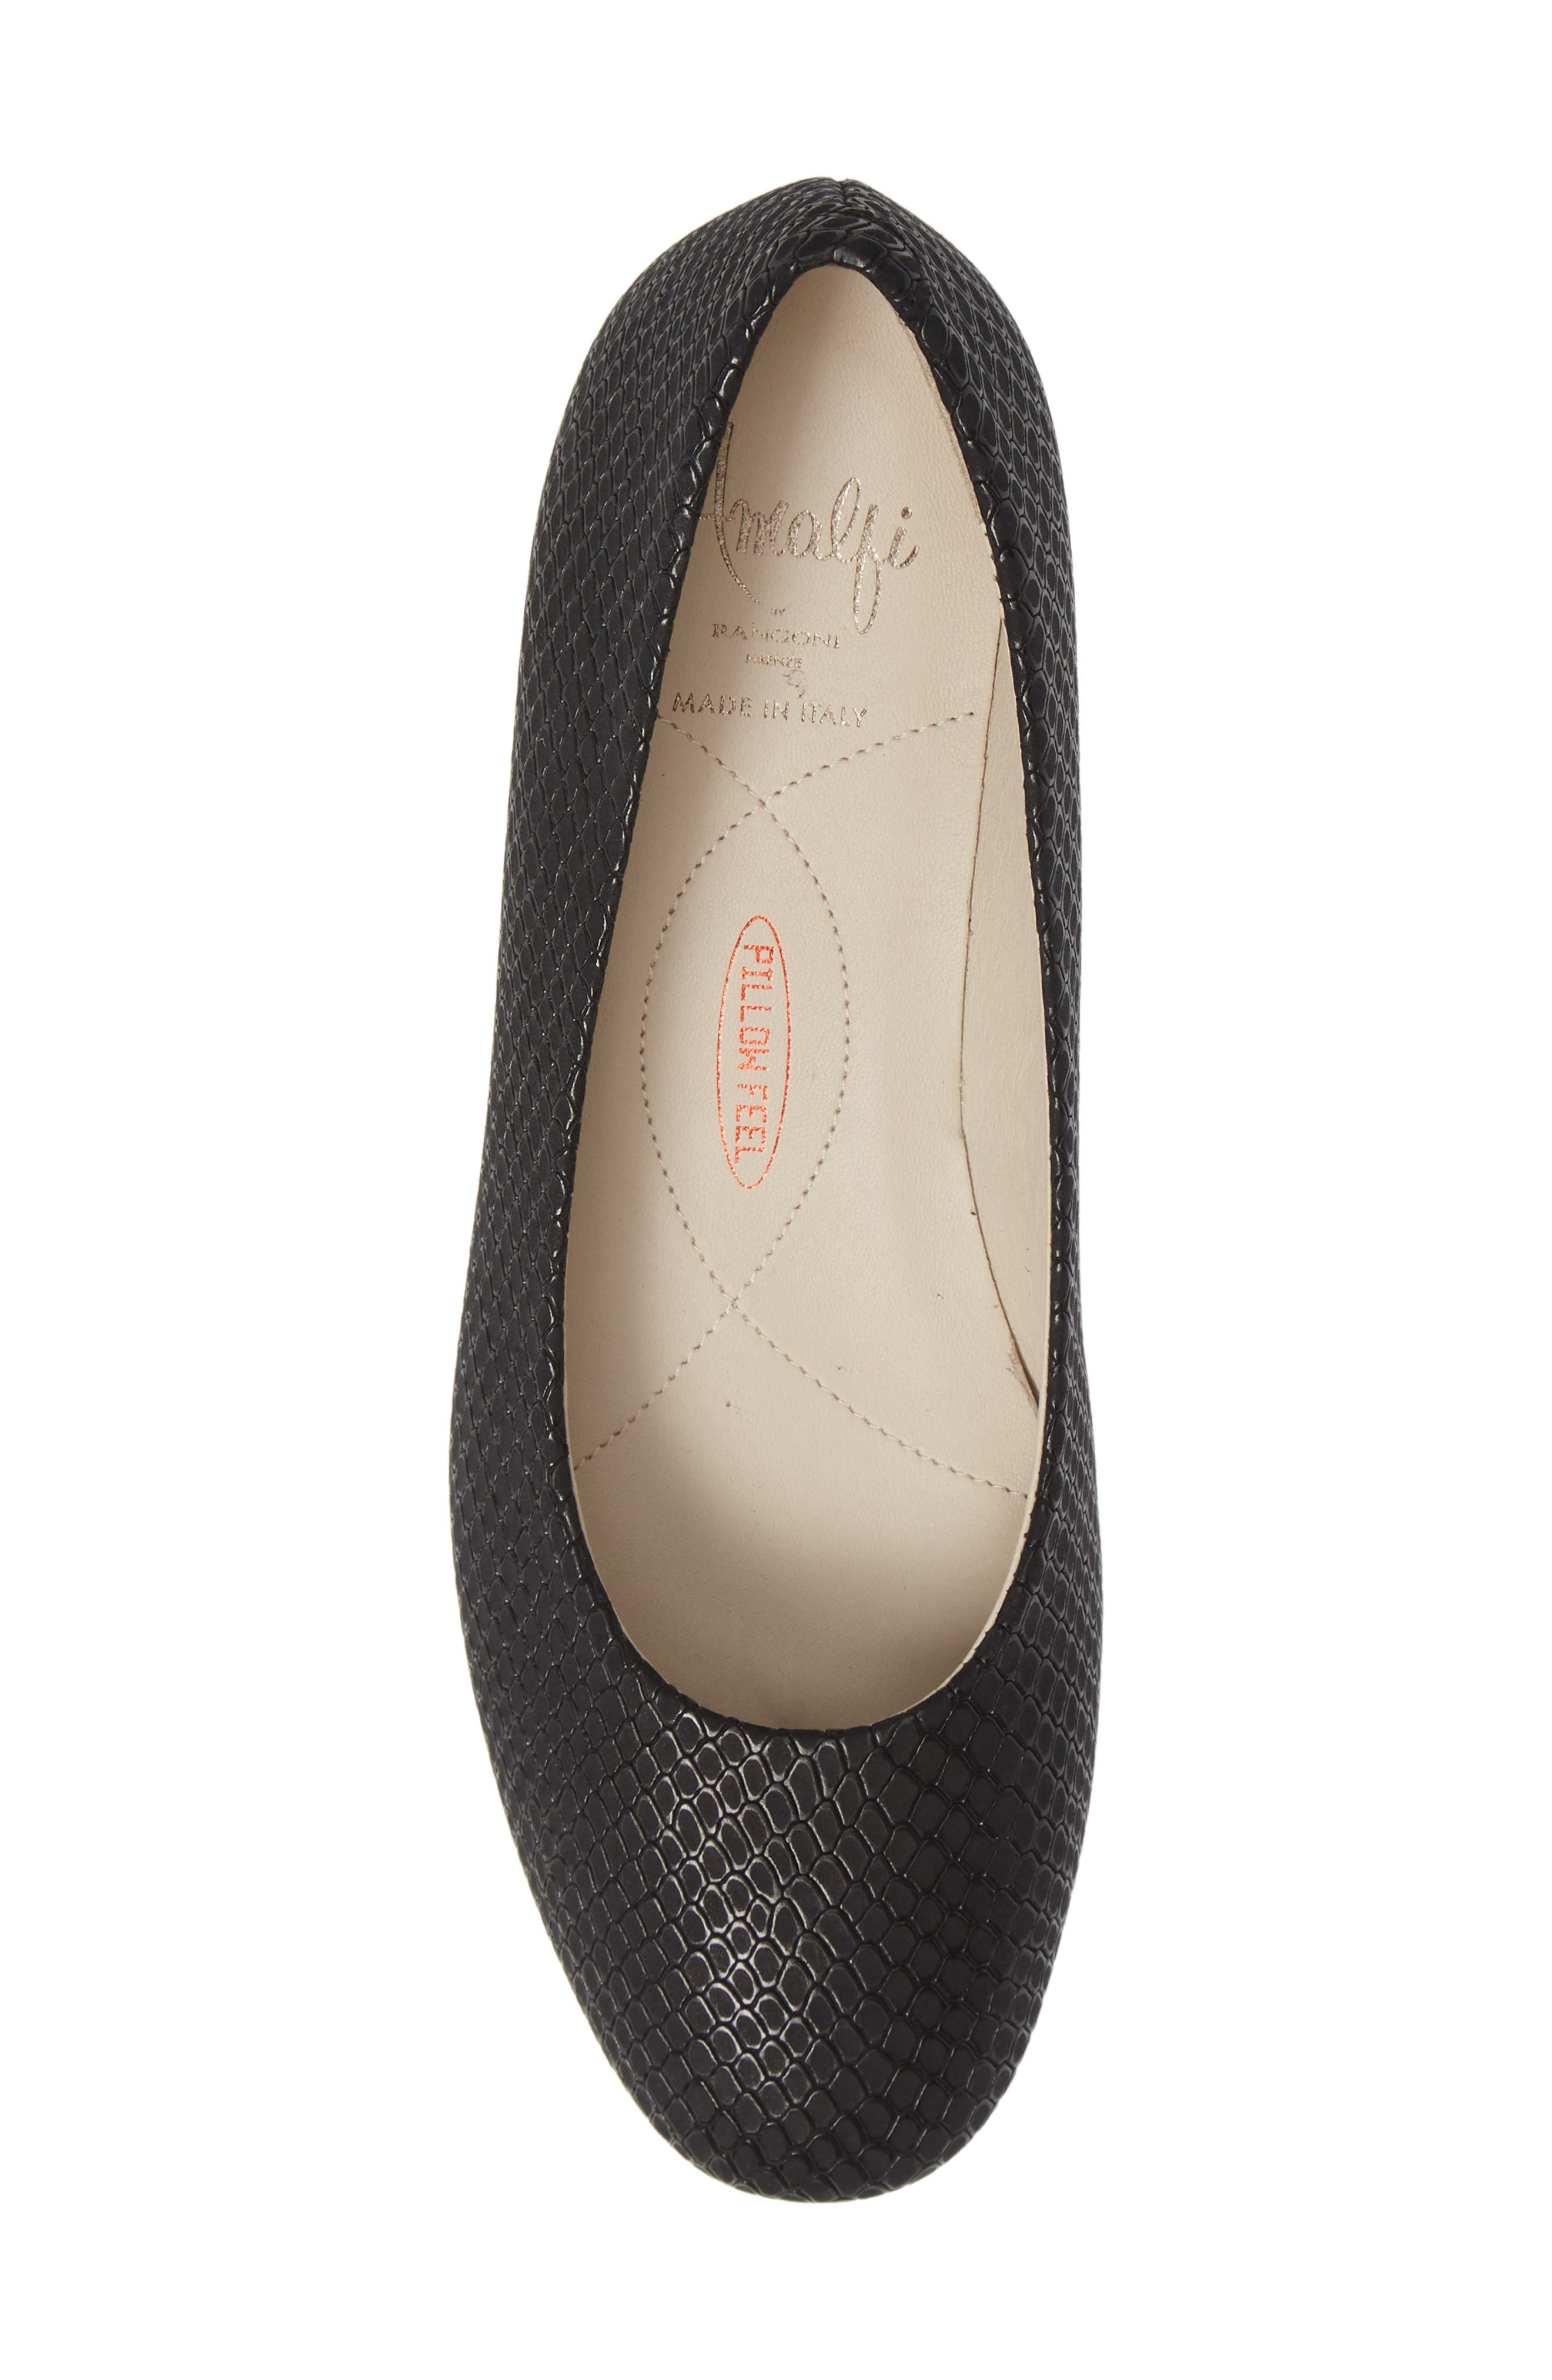 AMALFI BY RANGONI, Record Pump, Alternate thumbnail 5, color, BLACK OXIDE SUEDE